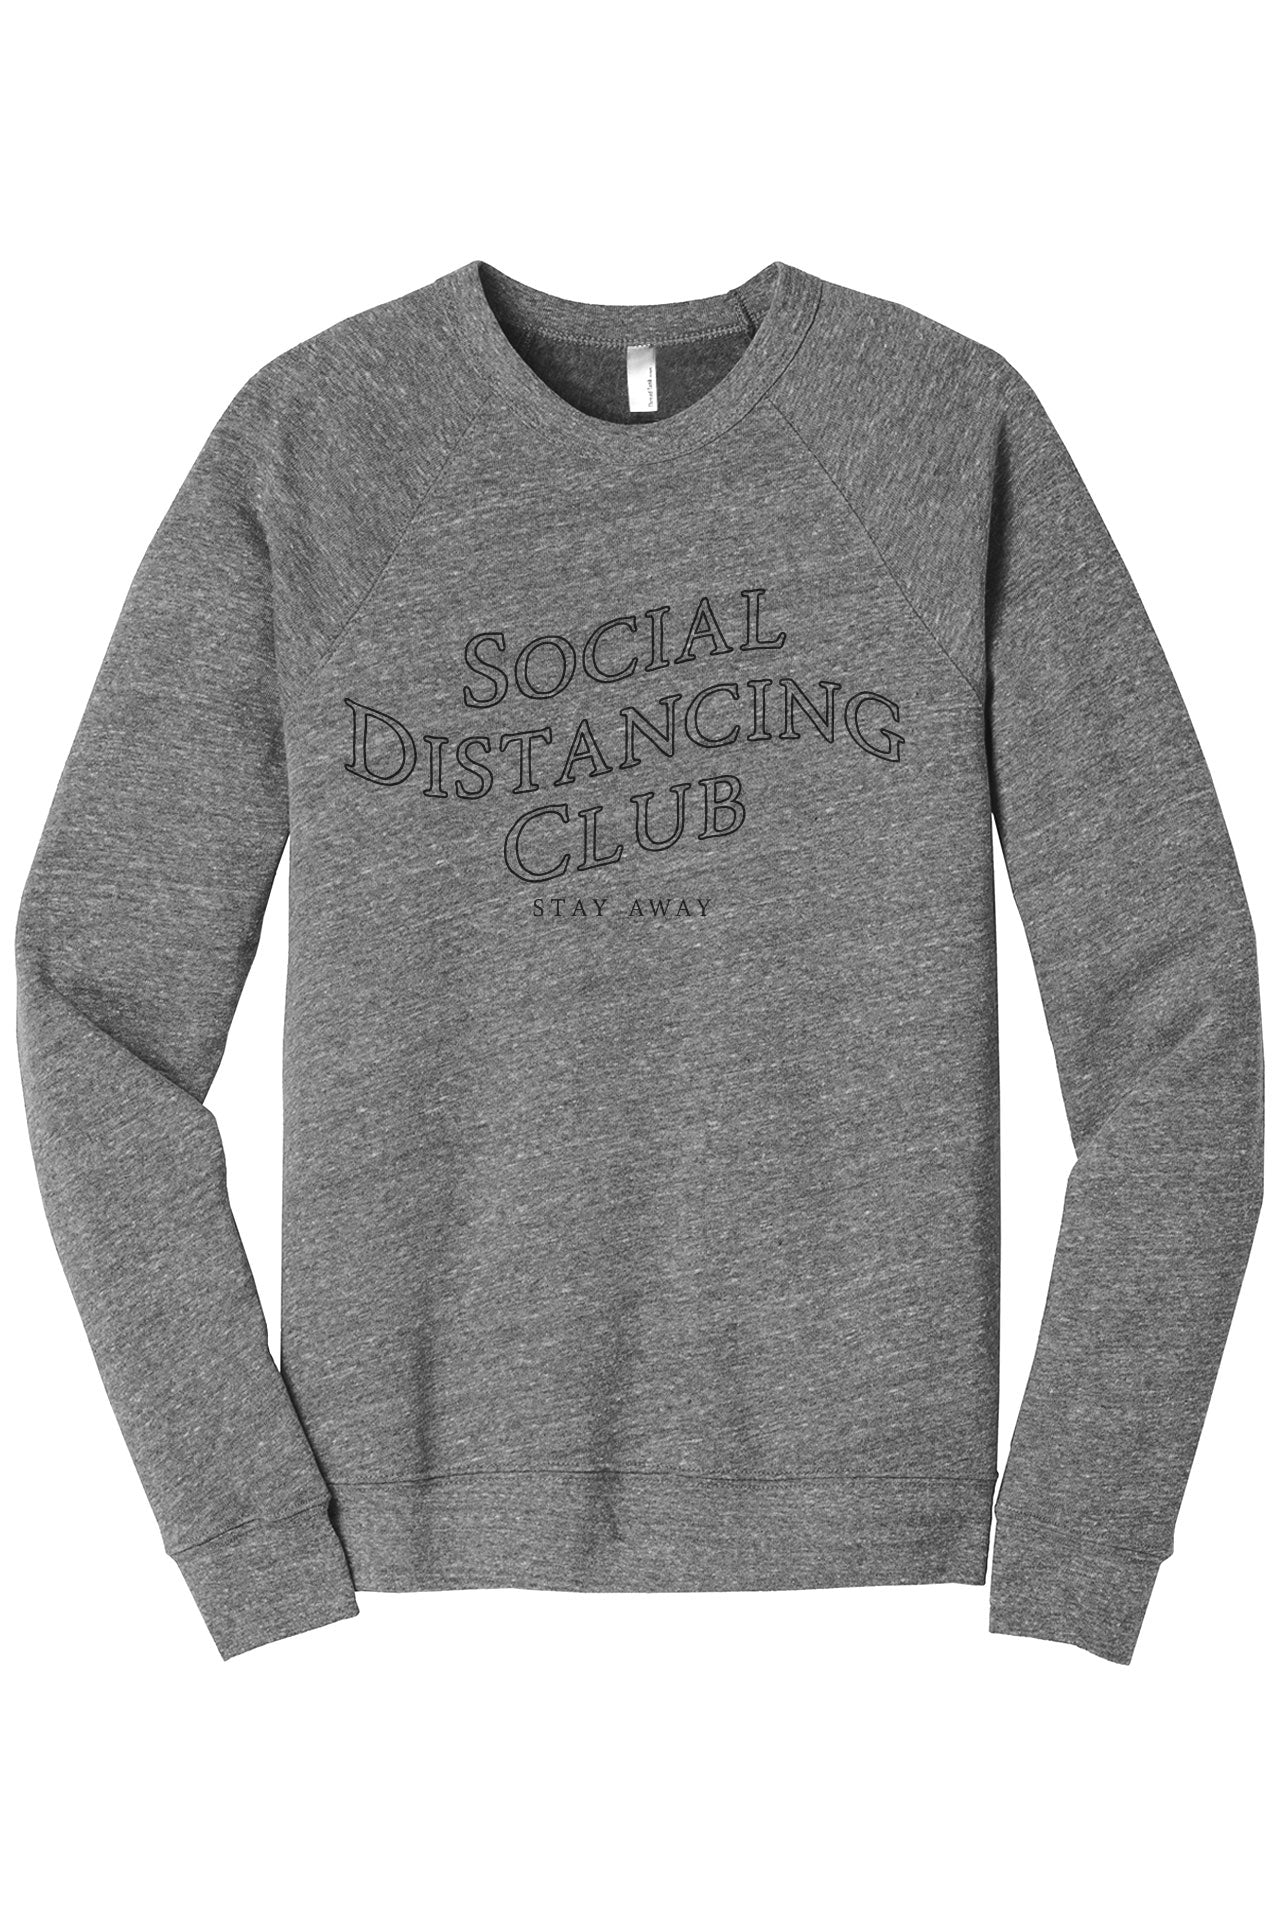 Social Distancing Club Women's Cozy Fleece Longsleeves Sweater Rouge Closeup Details